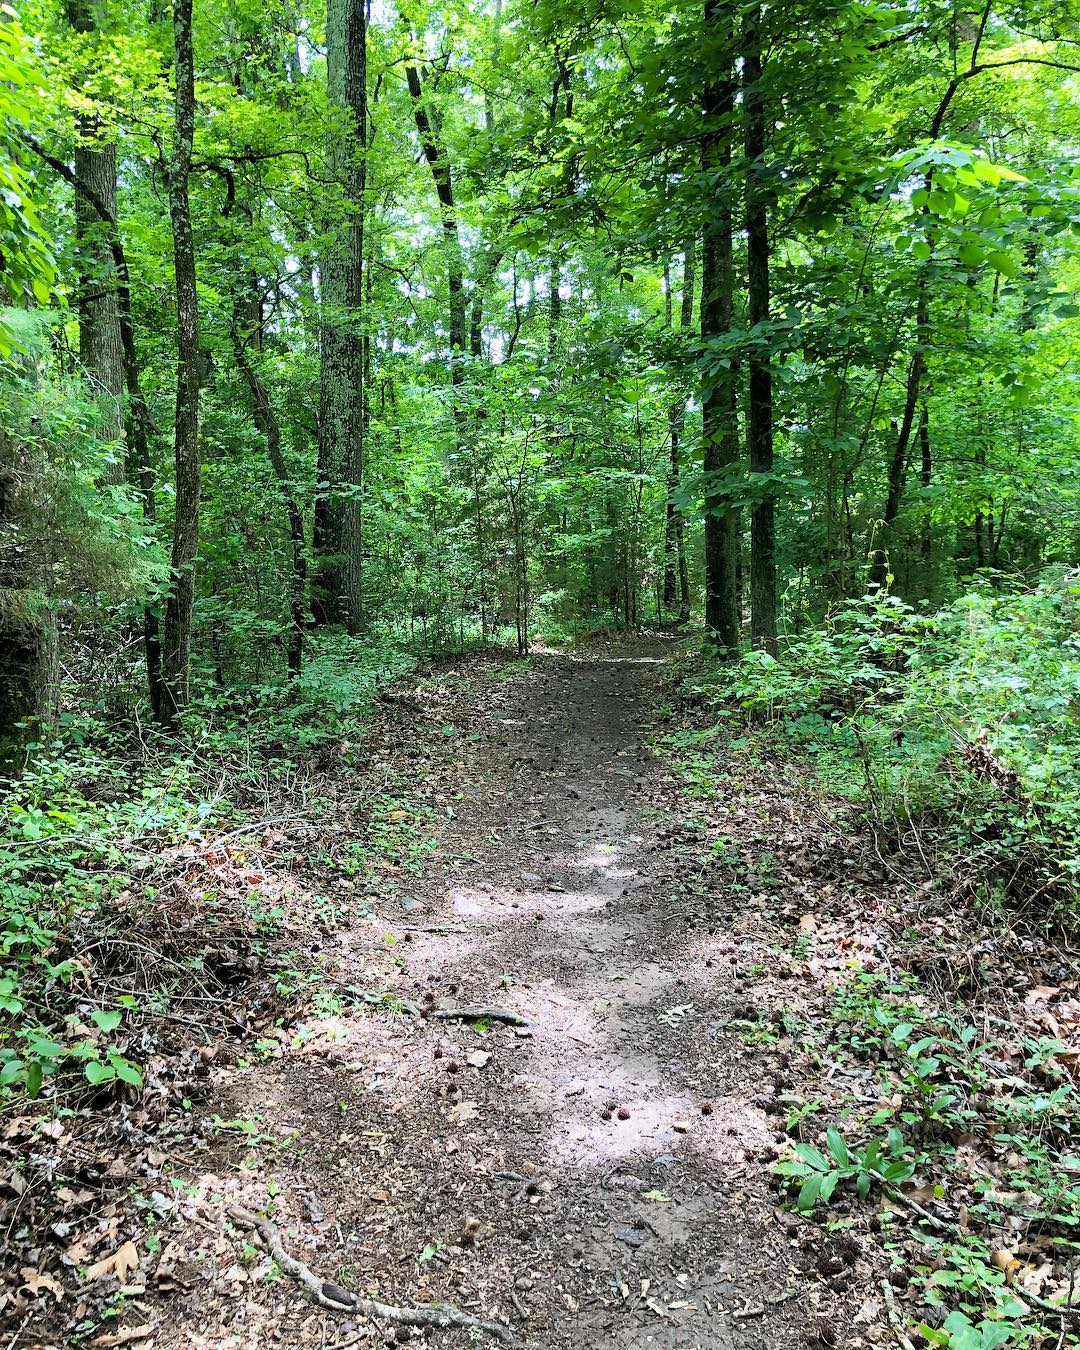 While a wildlife management area, Draper features trails through wooded and open fields for exploring